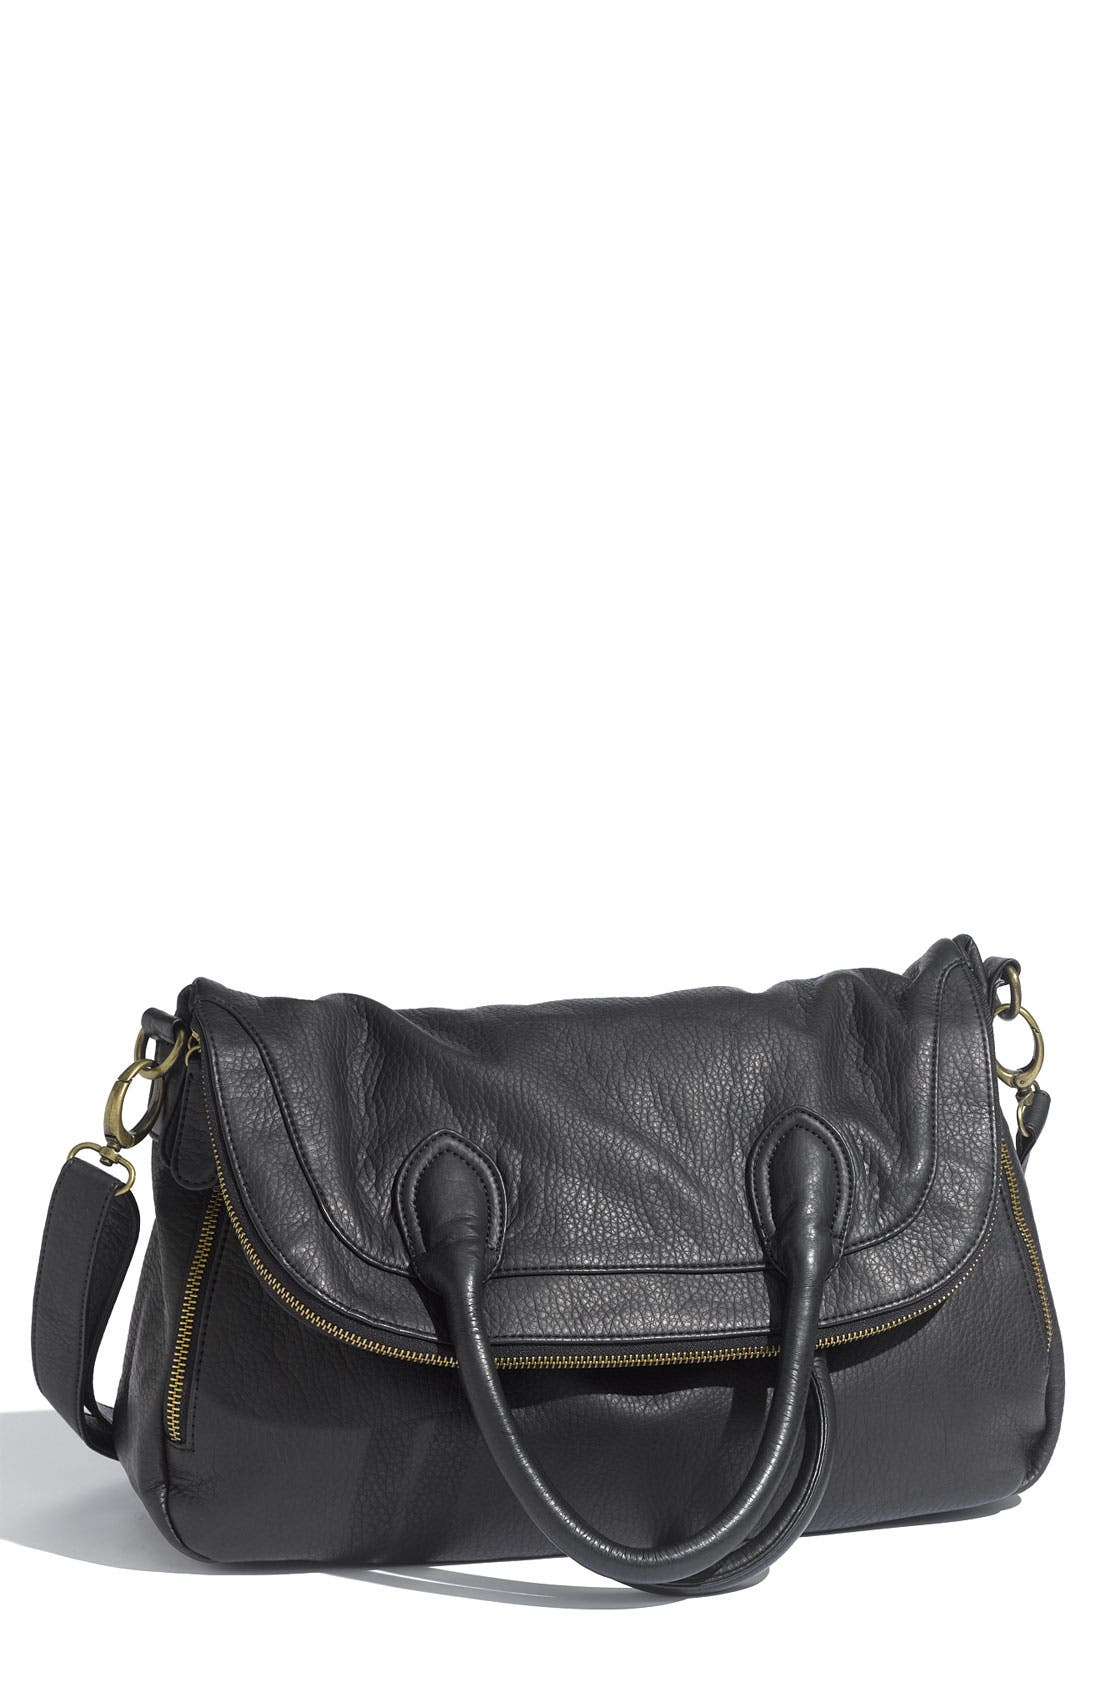 Alternate Image 1 Selected - Tulu Faux Leather Crossbody Bag (Nordstrom Exclusive)